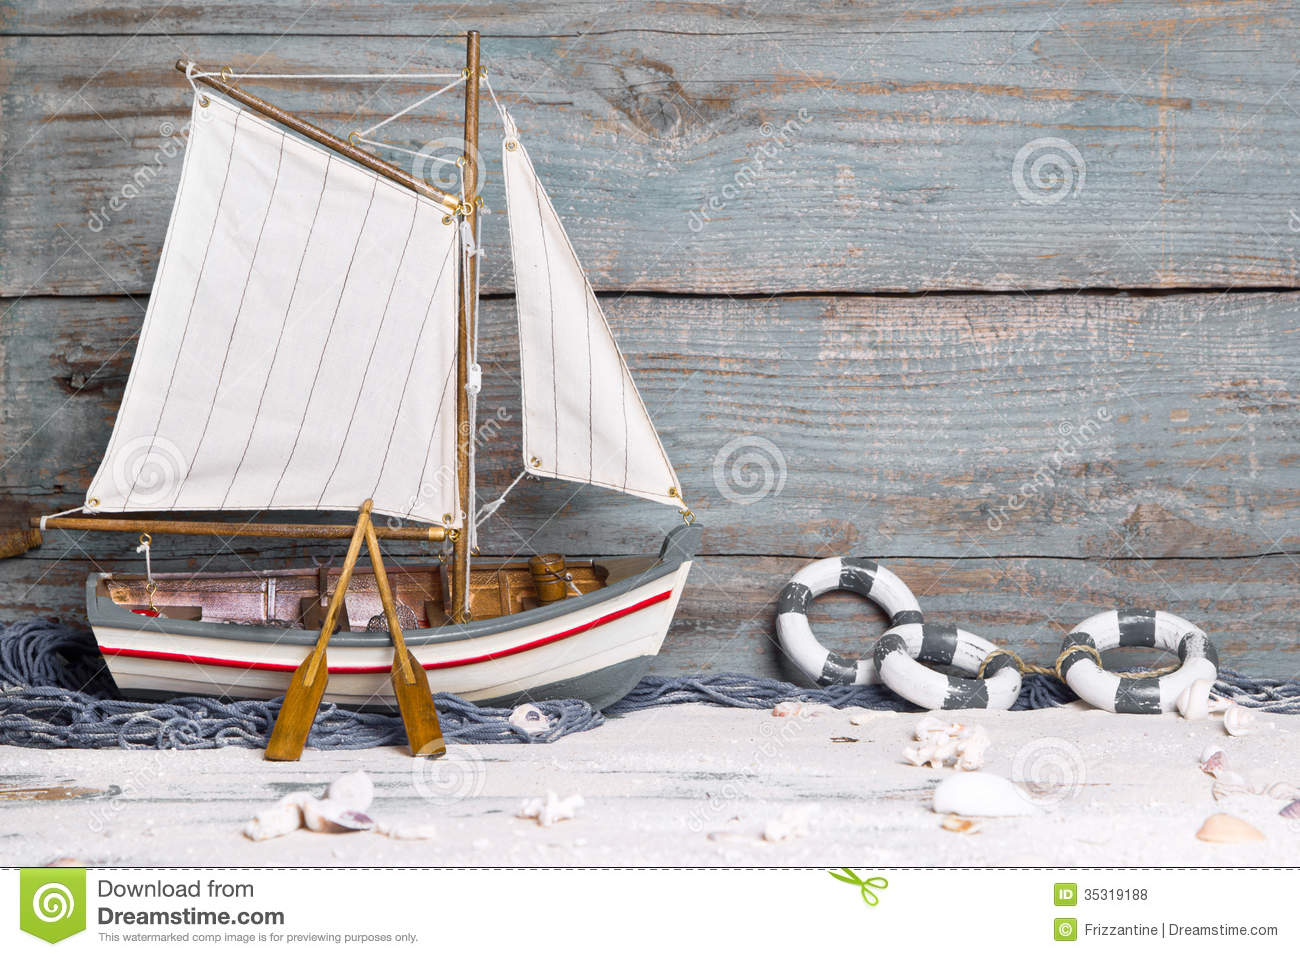 Sailboat decoration stock photo. Image of driftwood, beach - 35319188